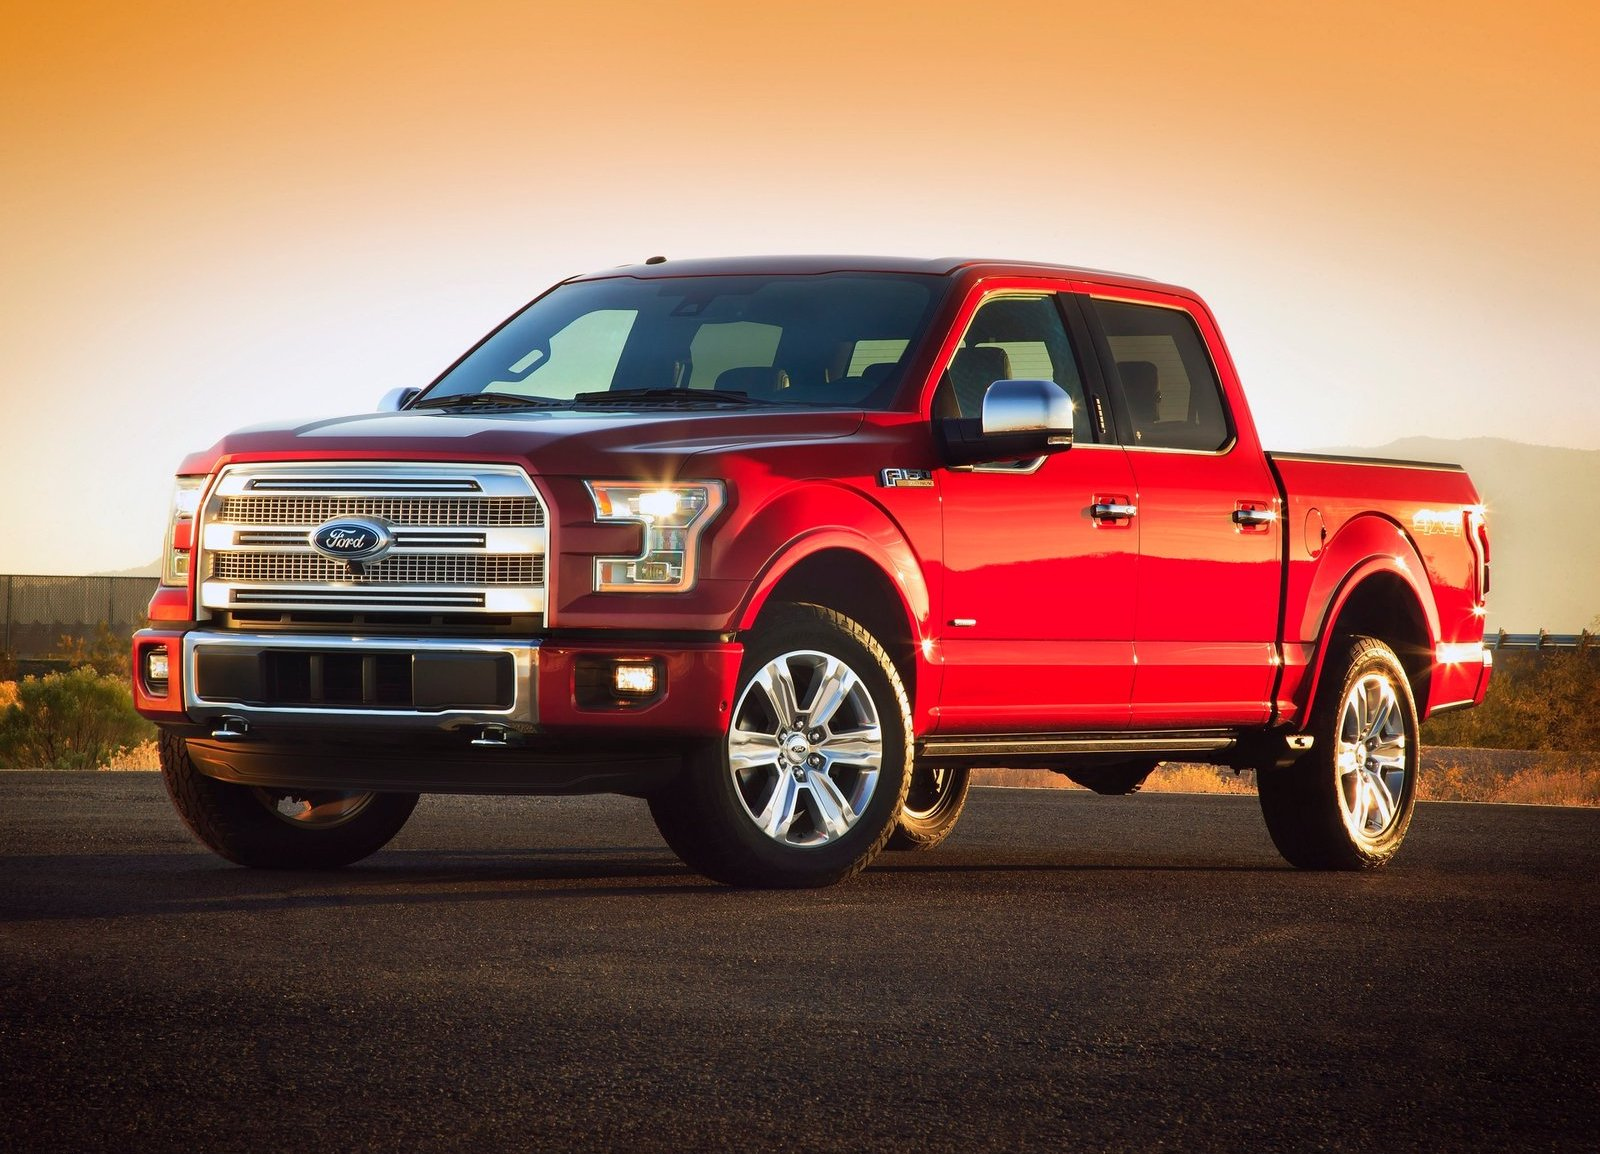 2015 and newer Ford F-150 pickups utilize aluminum in their body and structure to save weight.